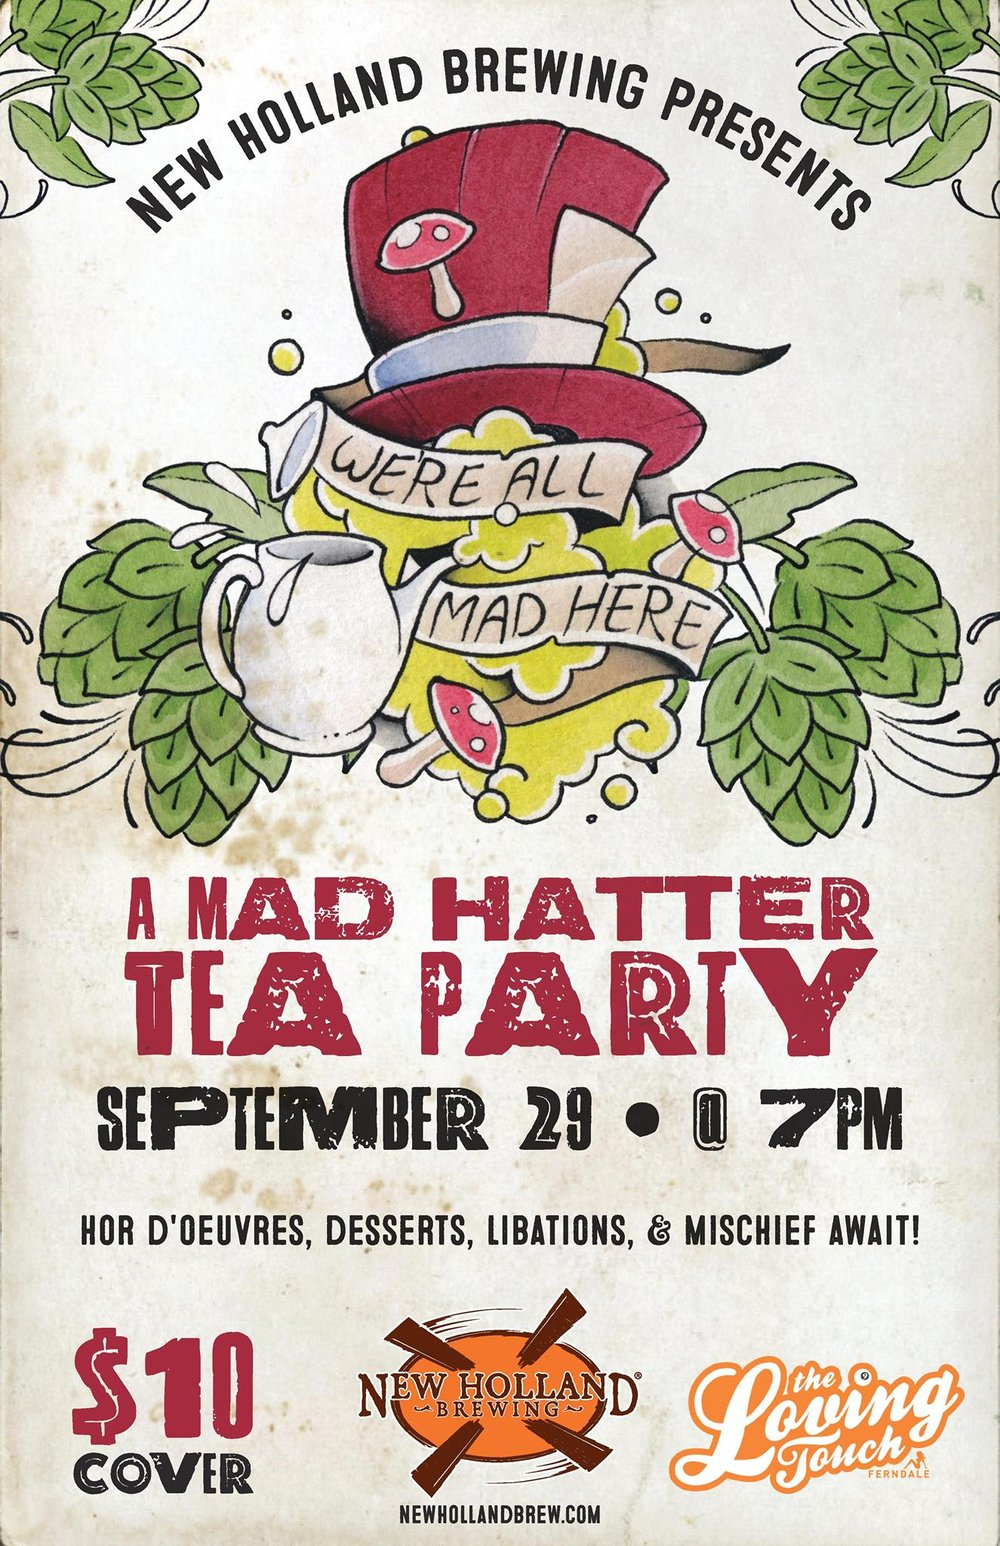 The Loving Touch and New Holland are bringing you a one of a kind event tonight - A Mad Hatter Tea Party! Doors are at 7pm, don't be late! Costumes and Formal Attire aren't mandatory, but are highly encouraged.